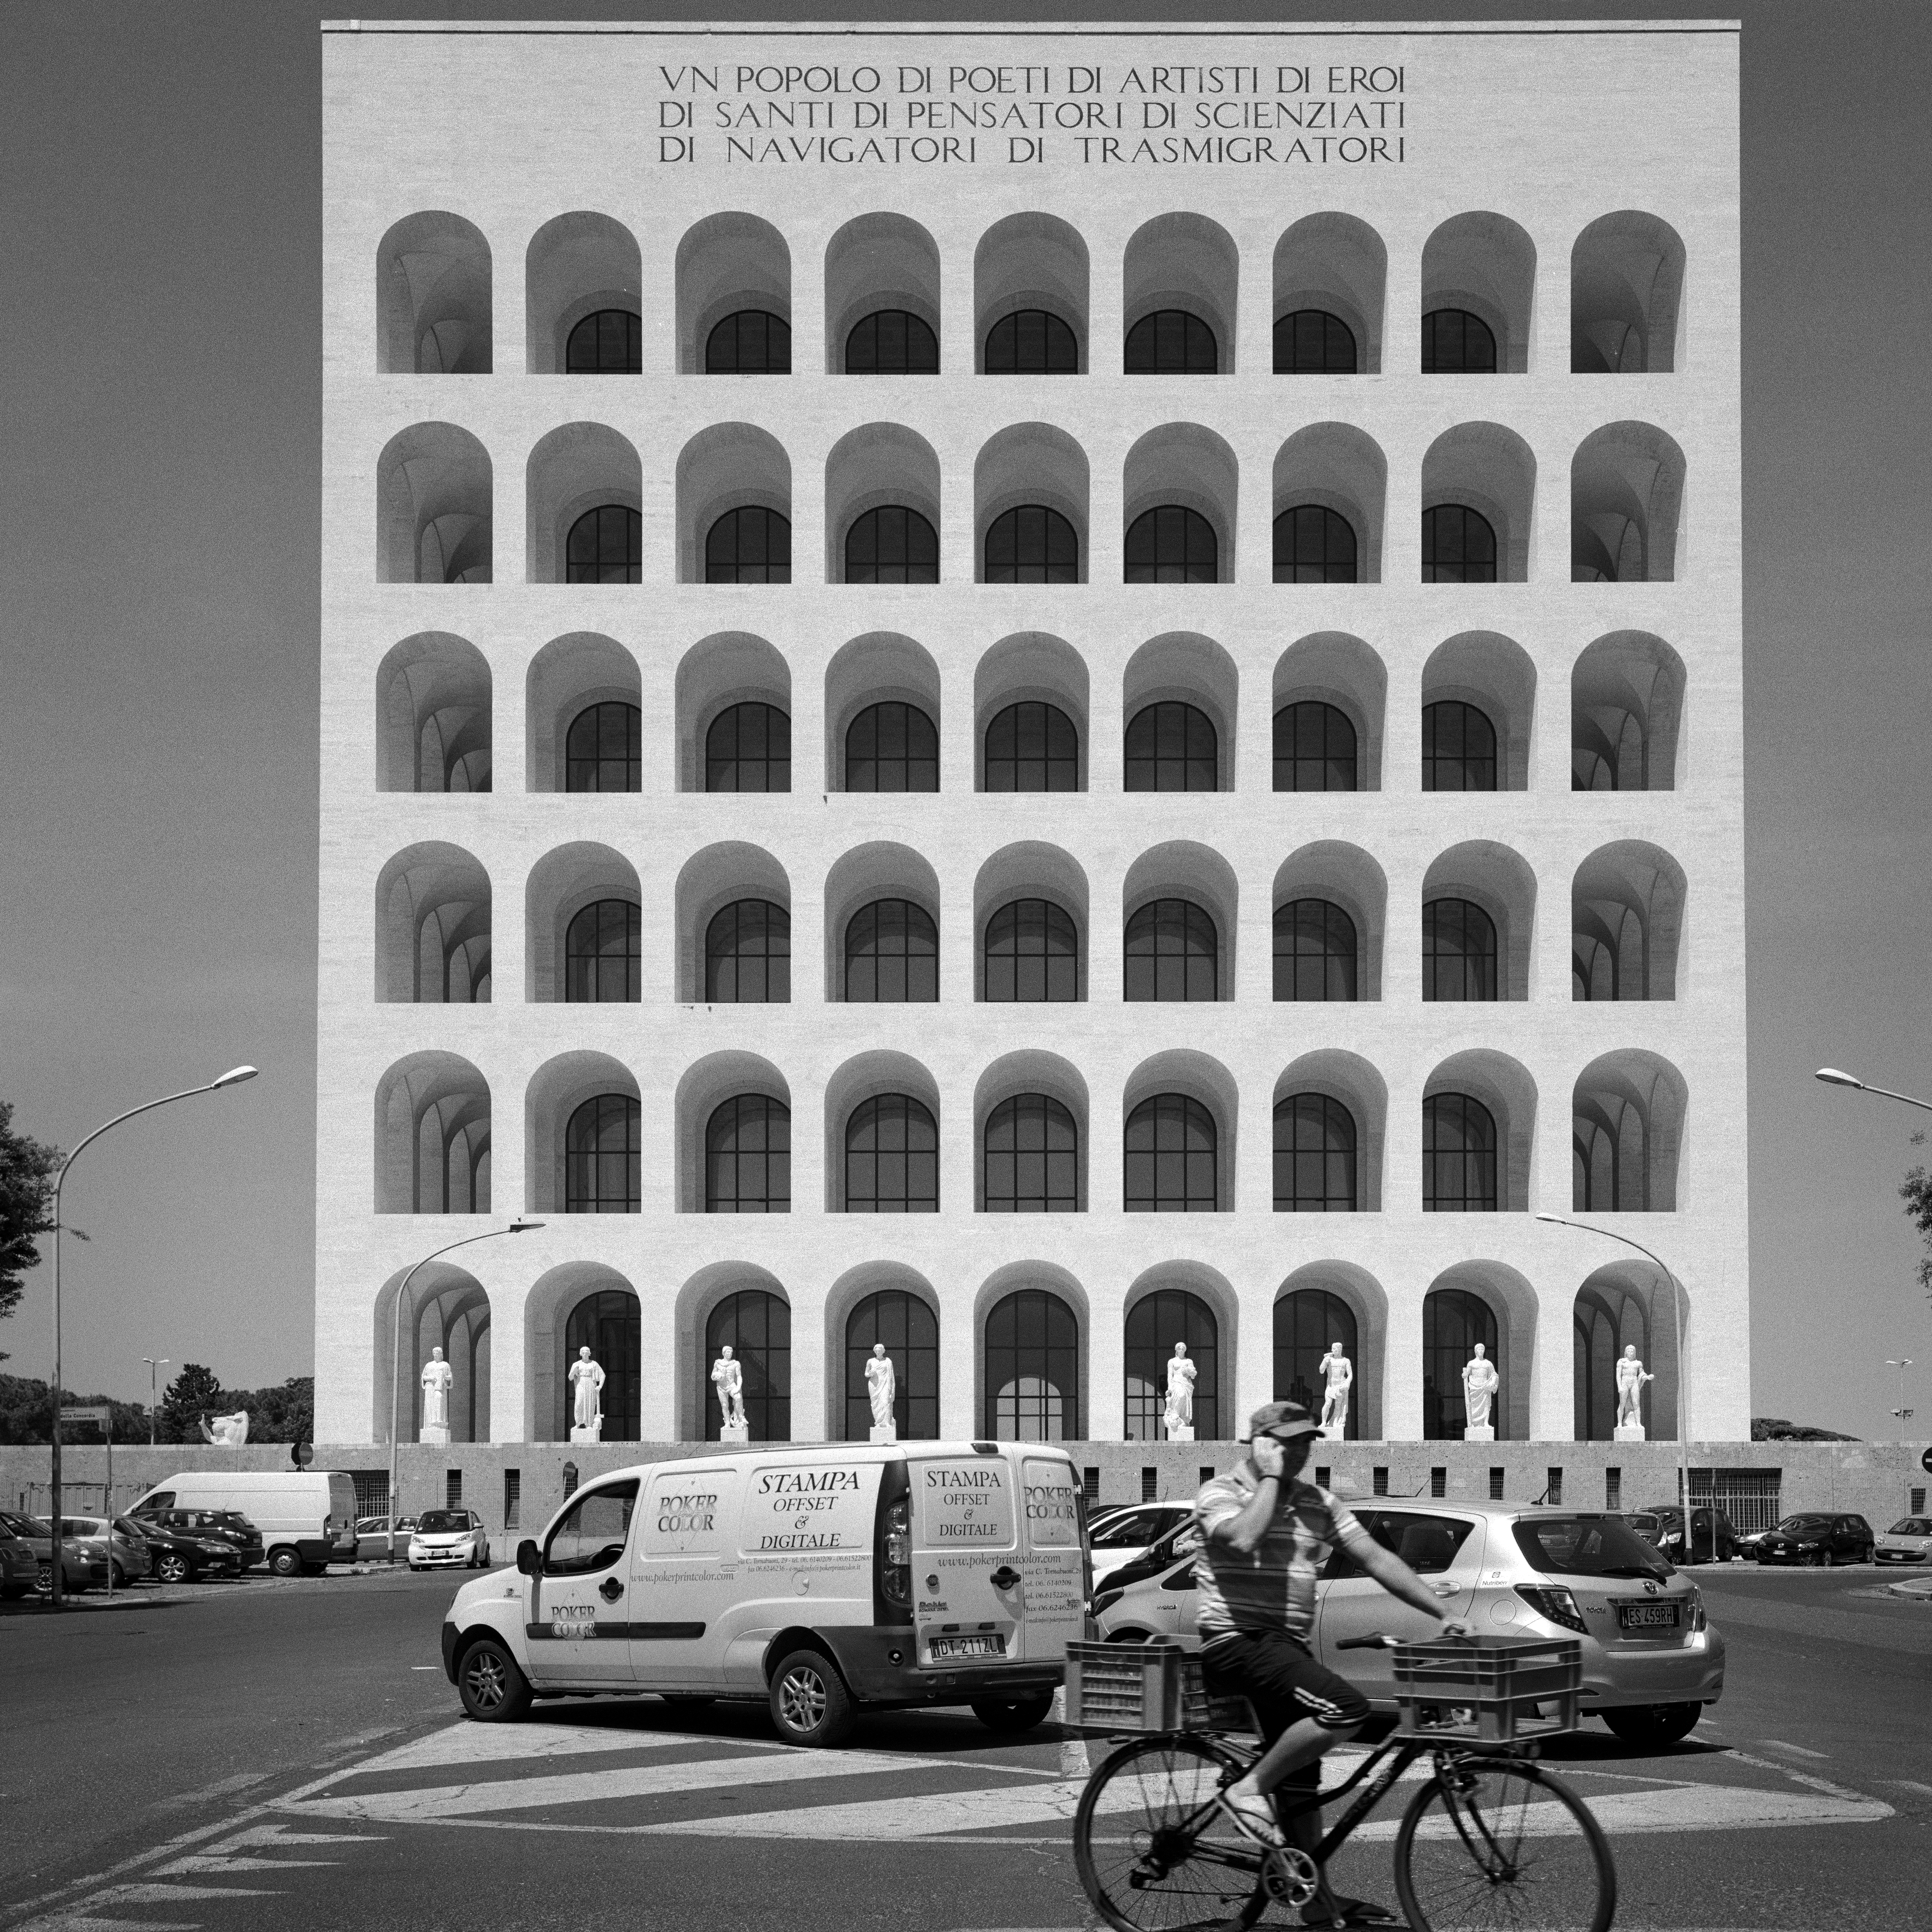 black and white image of a building in Rome with arched windows. A car park in the foreground, a man on a bicycle appears to be talking on the phone